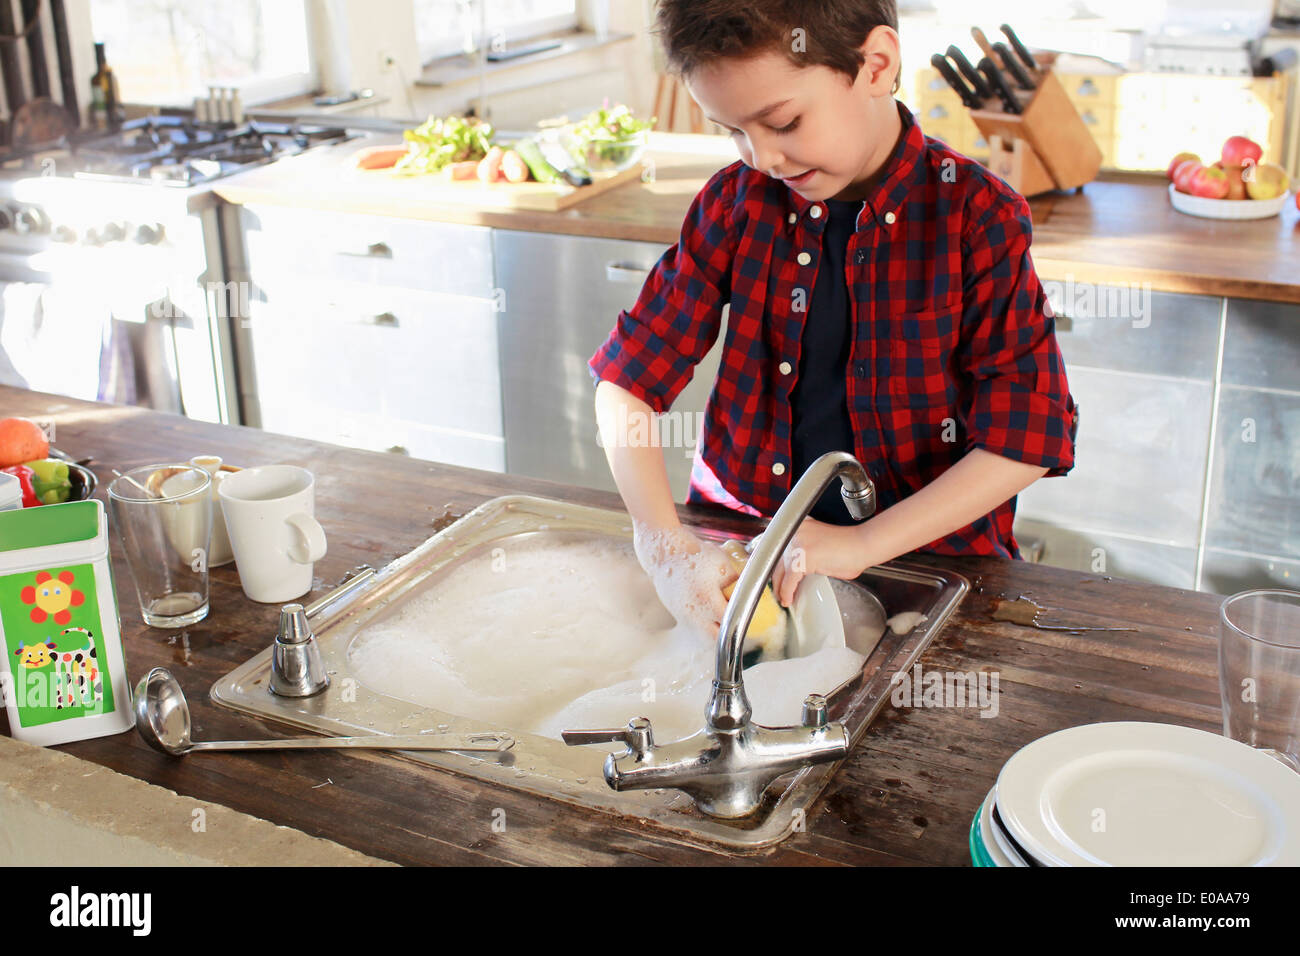 Young boy washing up in kitchen - Stock Image